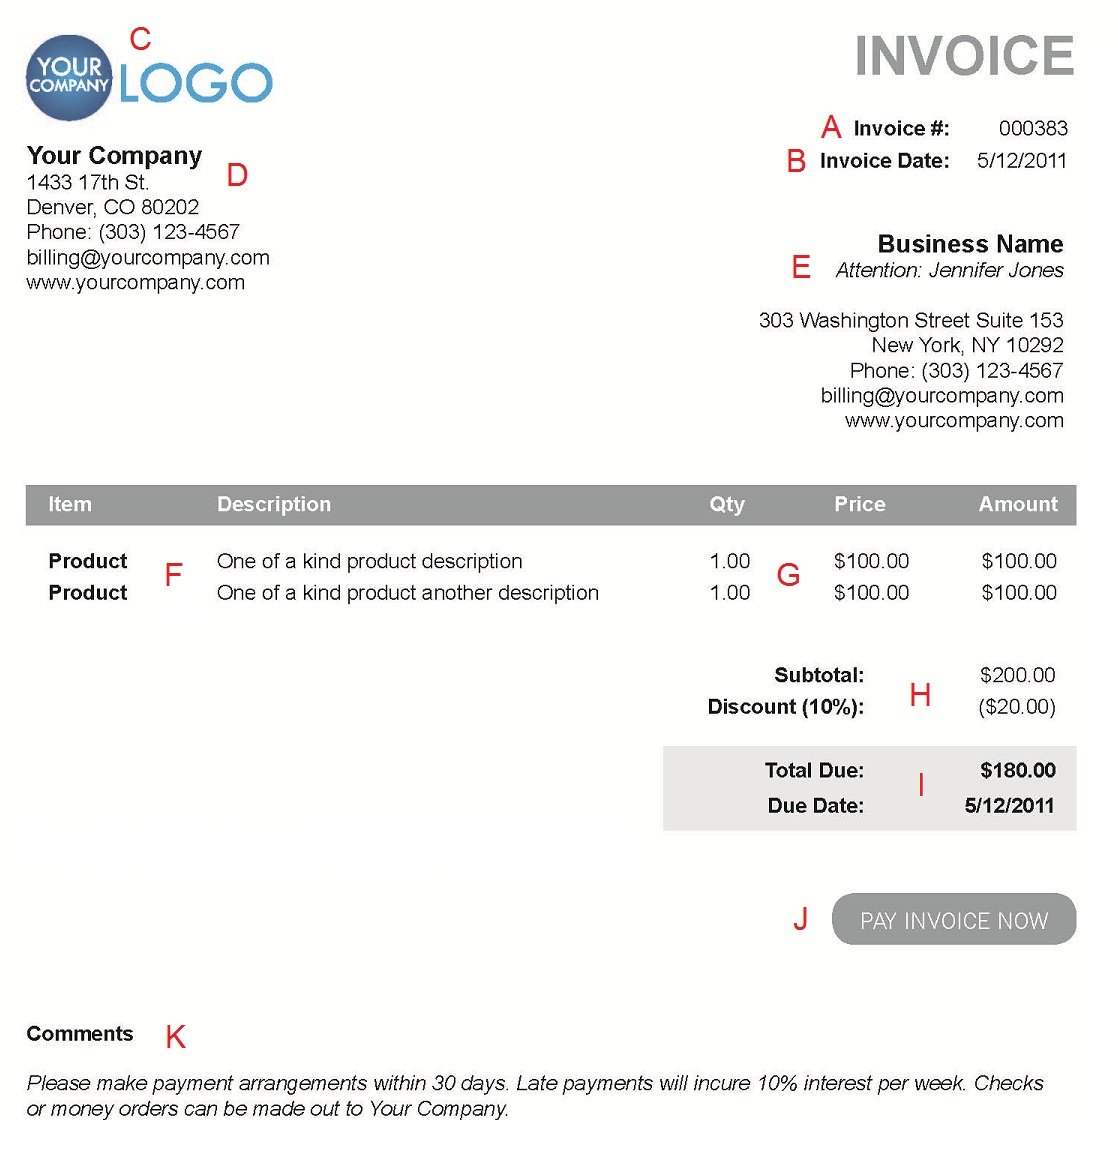 Ultrablogus  Marvellous The  Different Sections Of An Electronic Payment Invoice With Exquisite A  With Charming Plumbing Service Invoices Also Shop Invoice In Addition Auto Dealer Cost Vs Invoice And Xero Invoice Template As Well As Invoice Jobs Additionally Drive Invoice Template From Paysimplecom With Ultrablogus  Exquisite The  Different Sections Of An Electronic Payment Invoice With Charming A  And Marvellous Plumbing Service Invoices Also Shop Invoice In Addition Auto Dealer Cost Vs Invoice From Paysimplecom